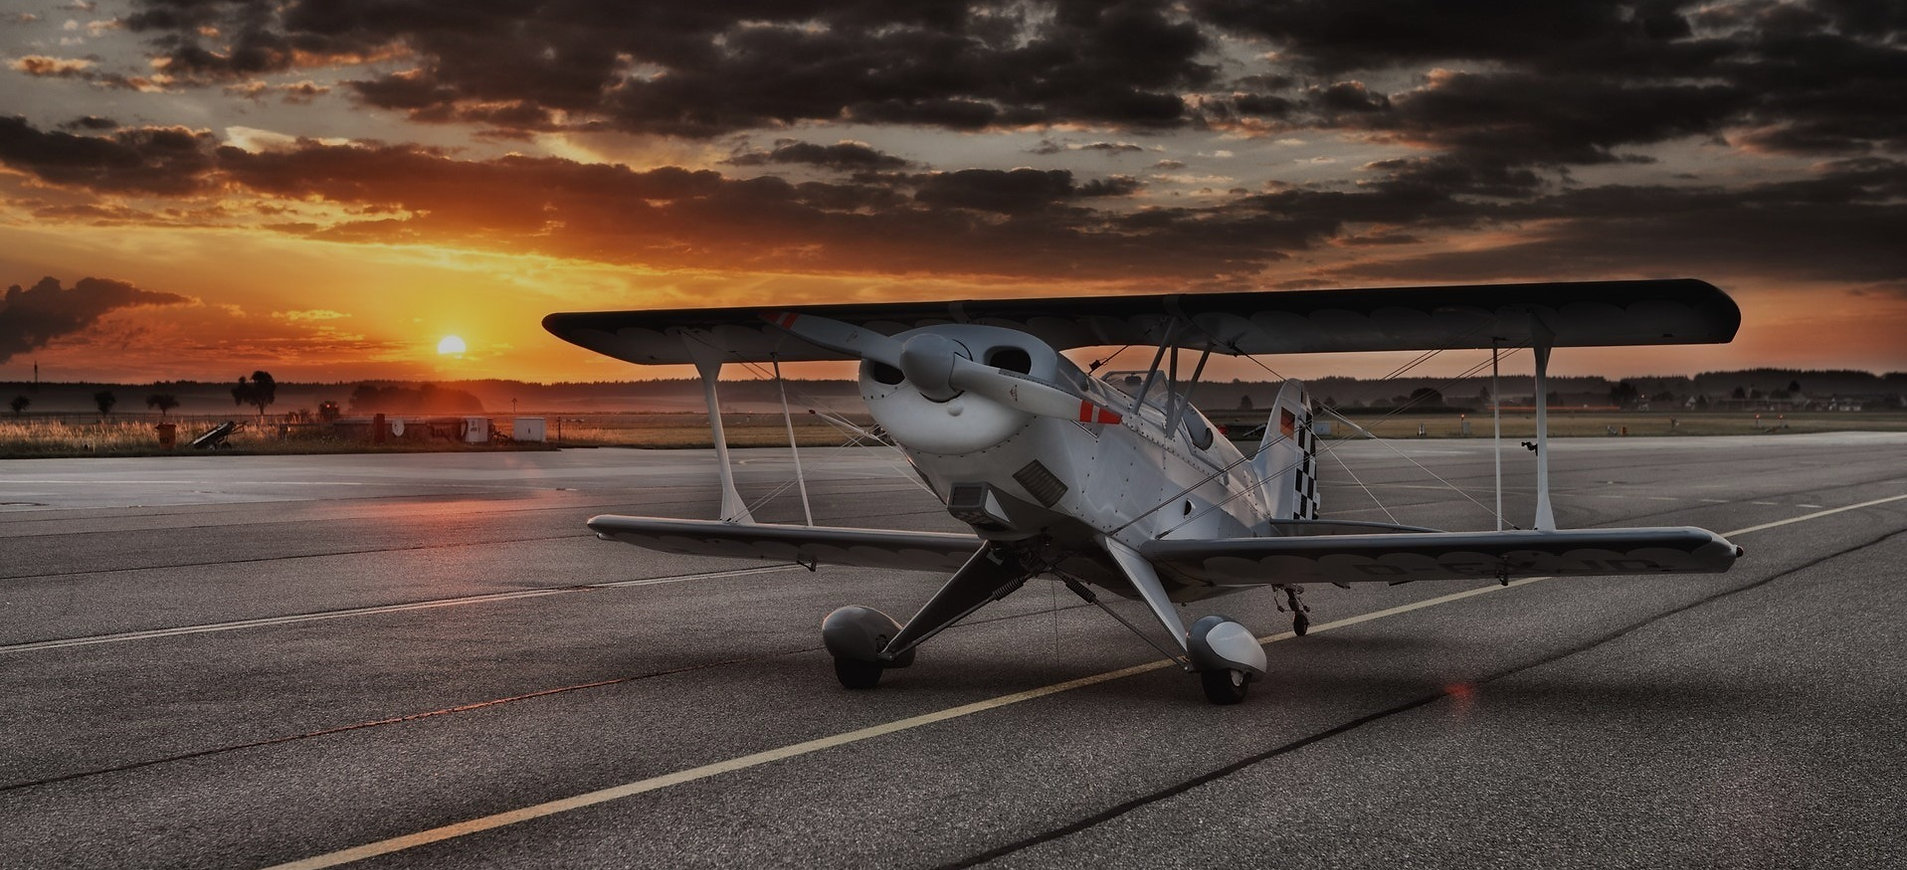 cessna-sunset_edited.jpg